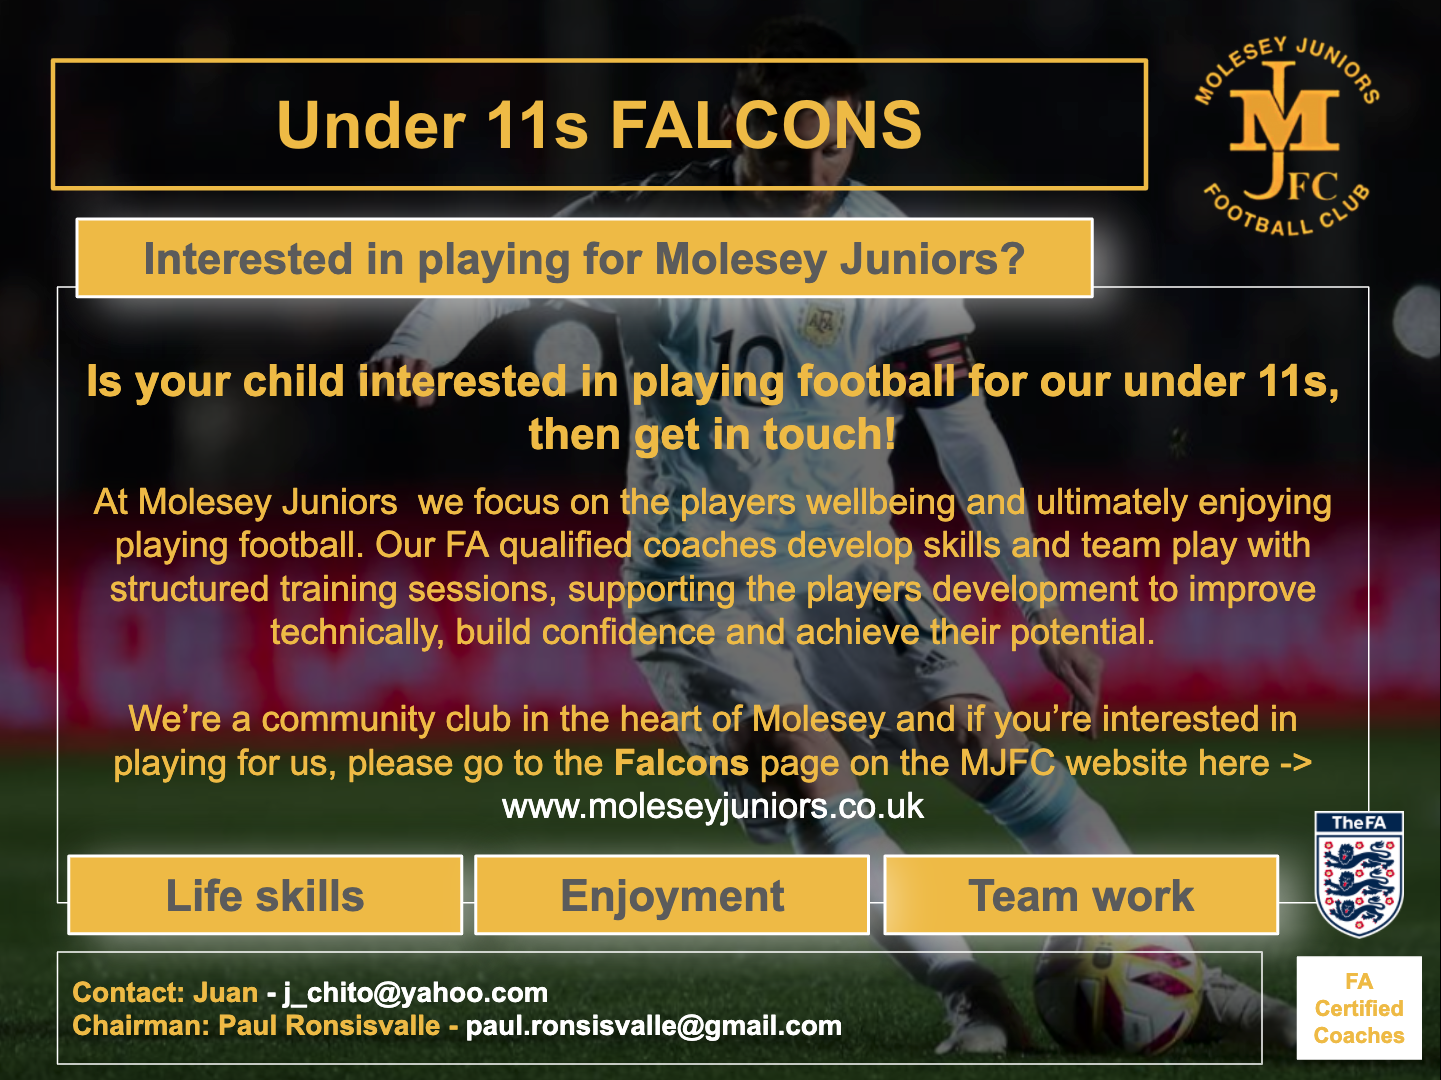 Under 11s Falcons